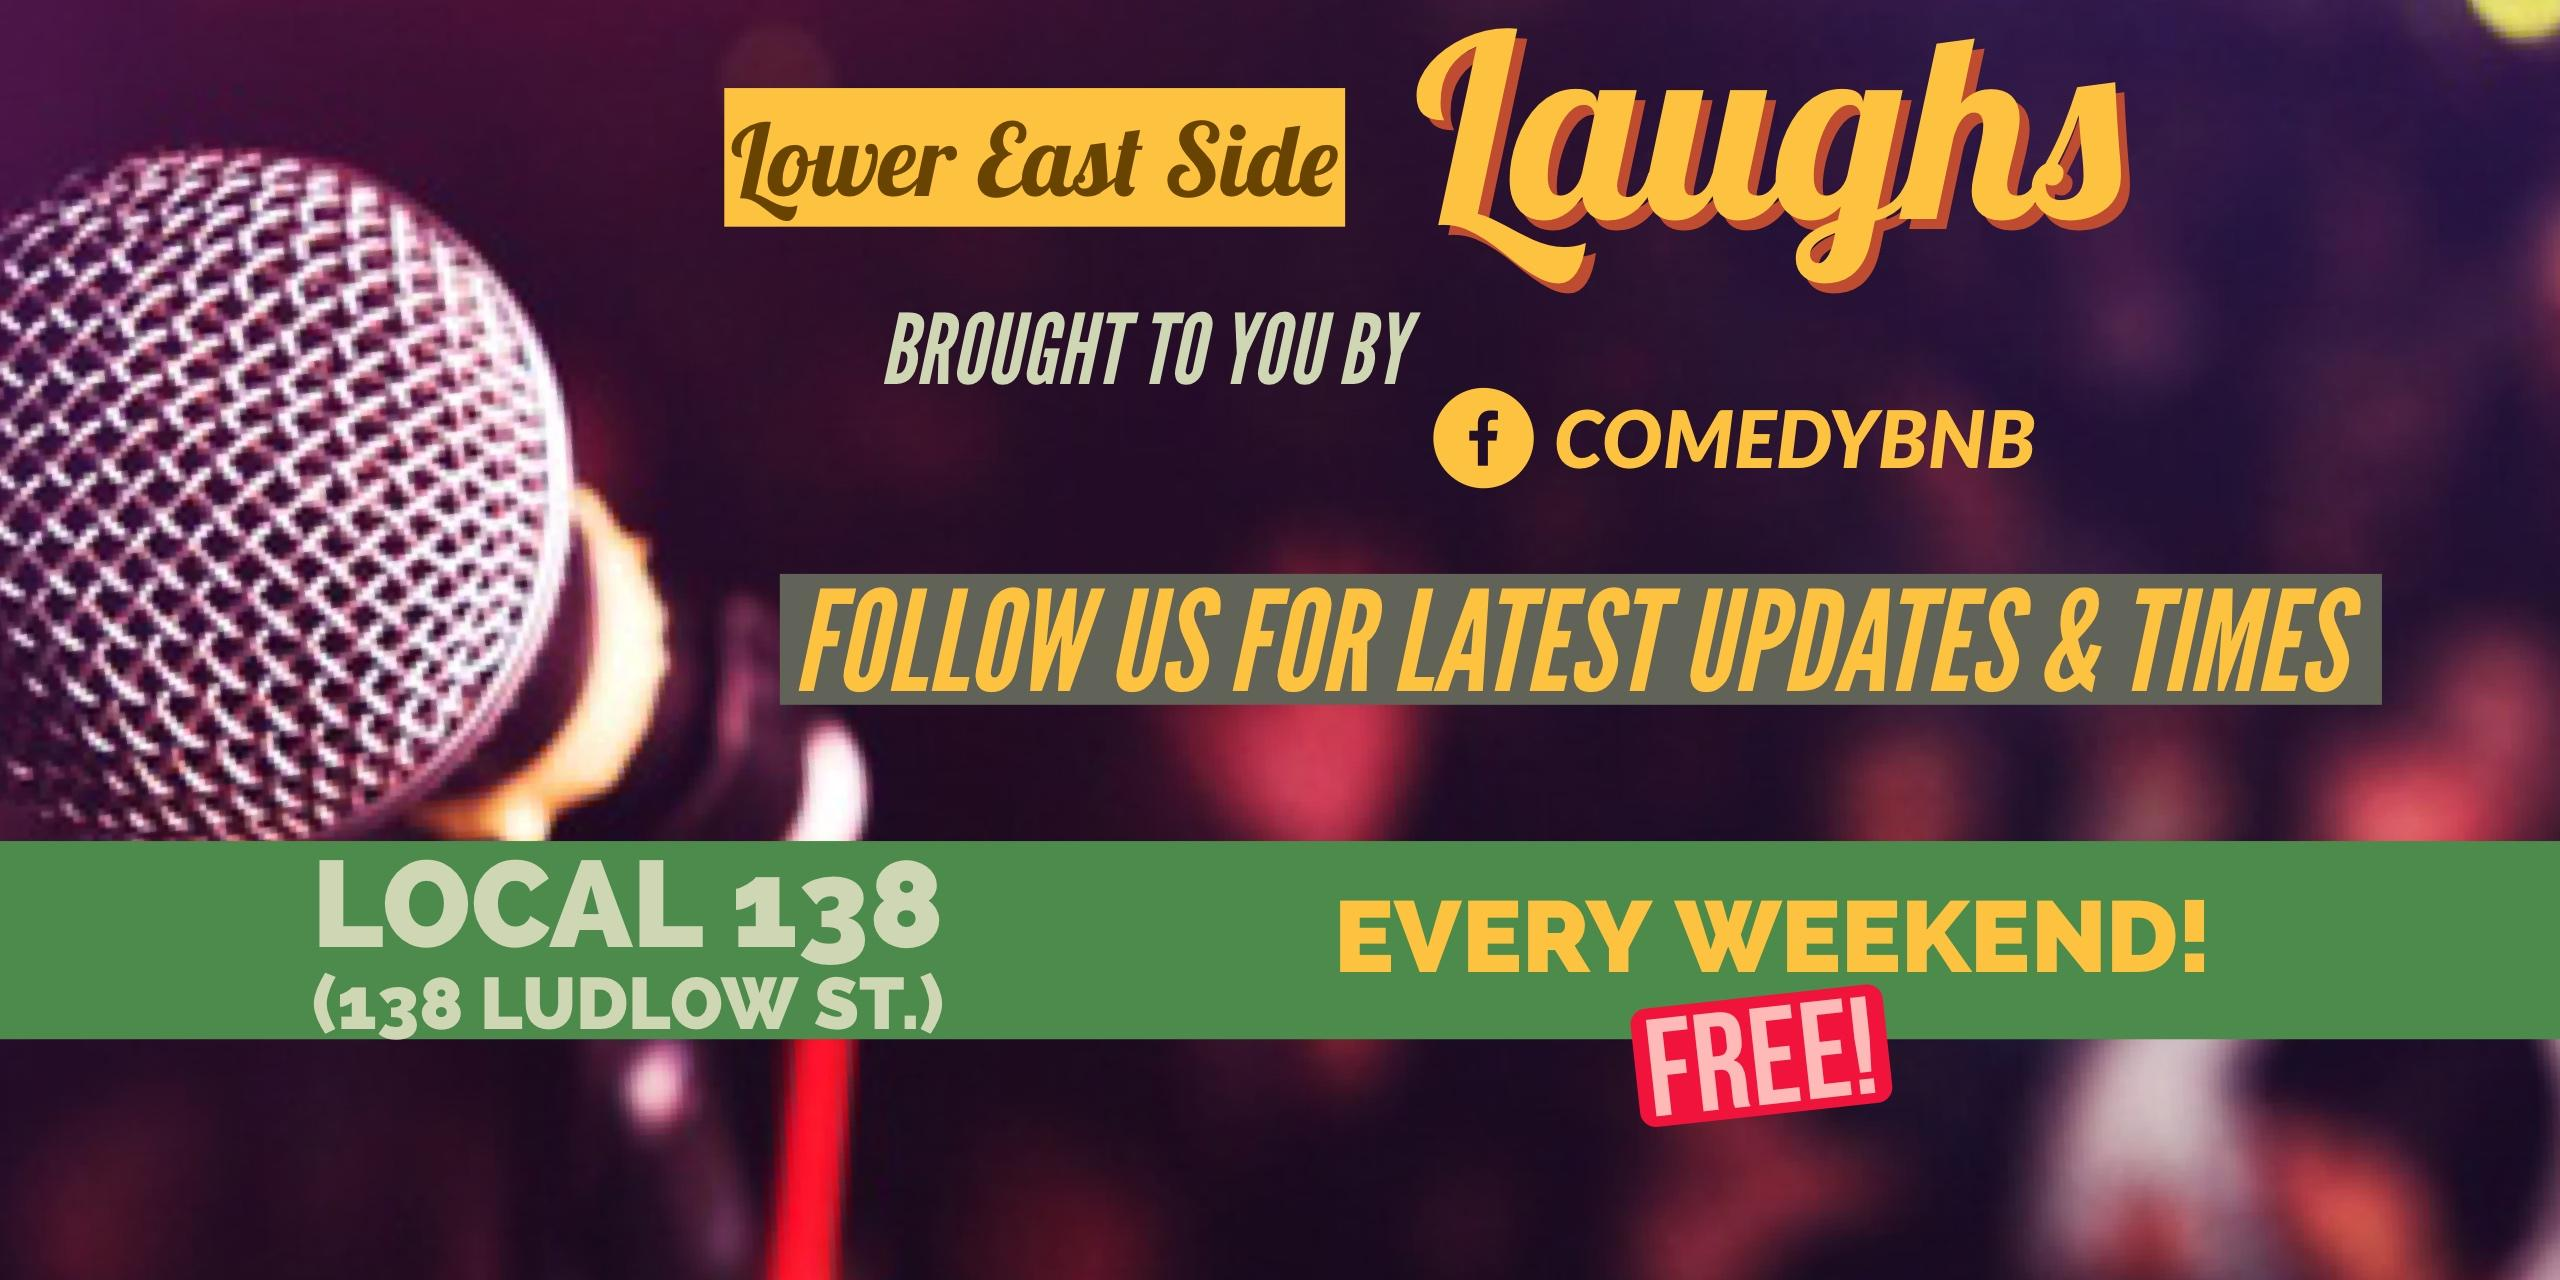 Lower East Side Laughs: FREE Comedy Show (Comedy BnB). Lower East Side Laughs: FREE Comedy Show (Comedy BnB)